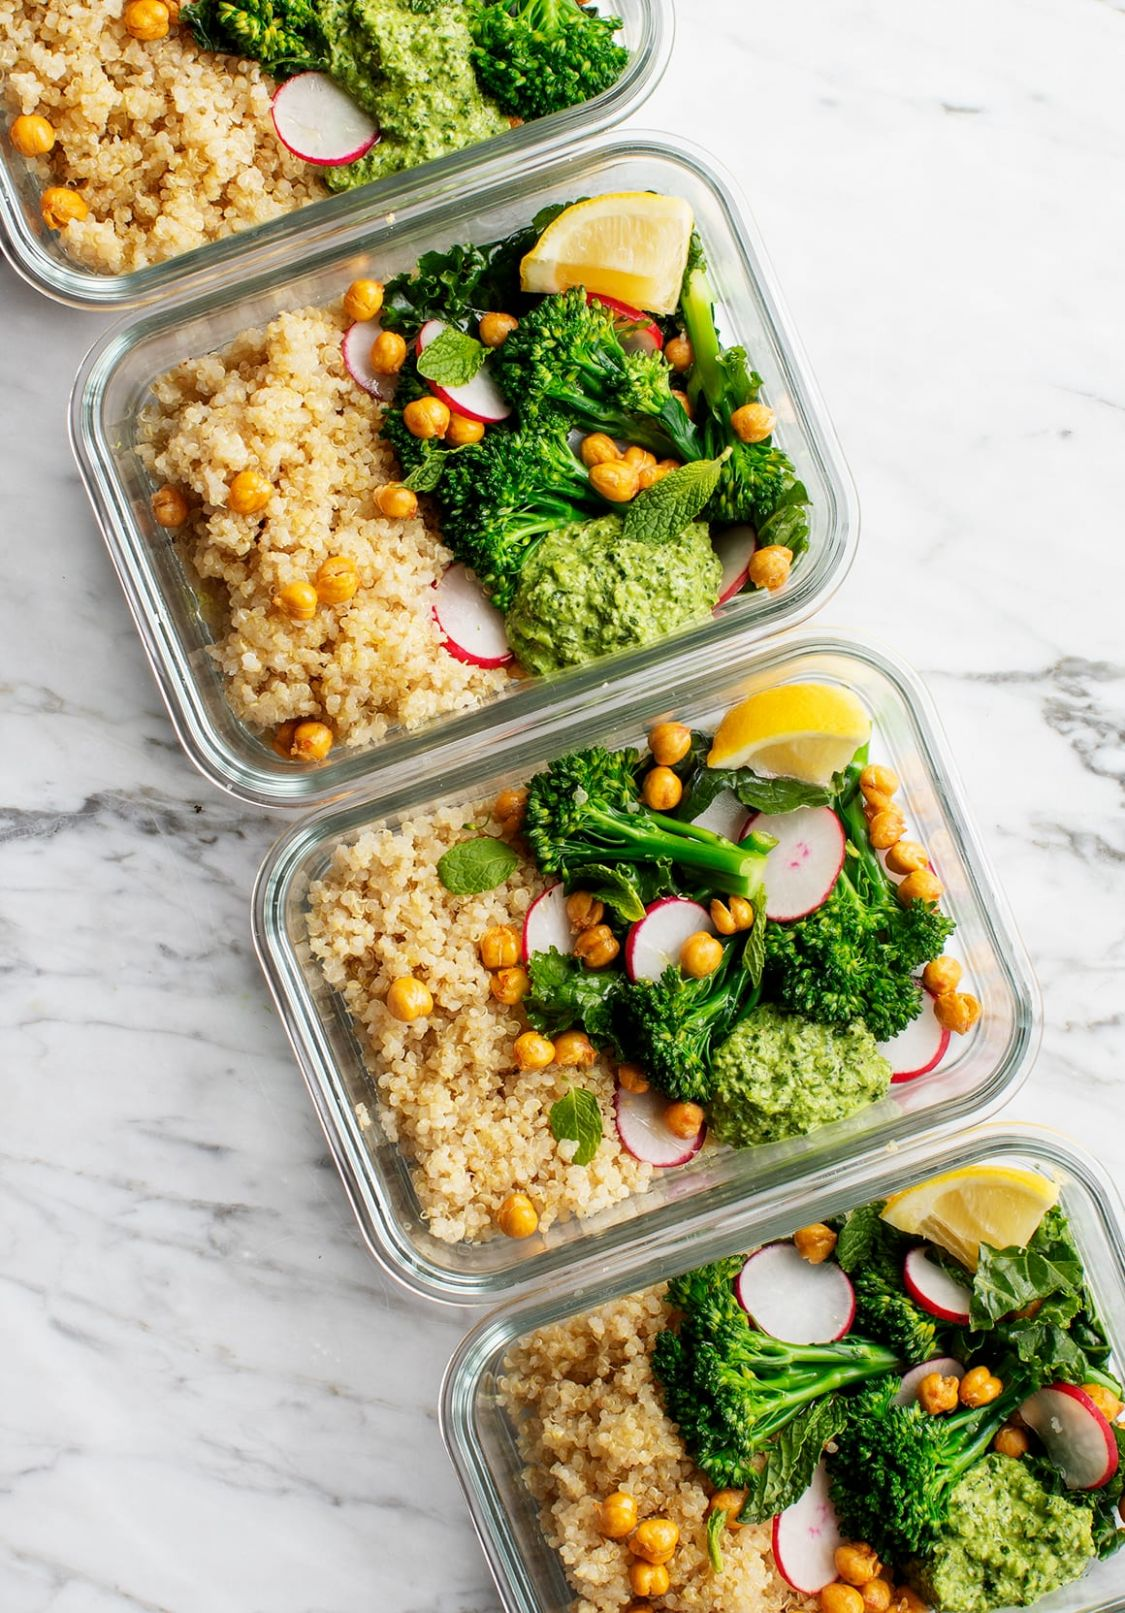 Healthy Meal Prep Ideas - Broccoli Quinoa Bowls - Dinner Recipes Meal Prep